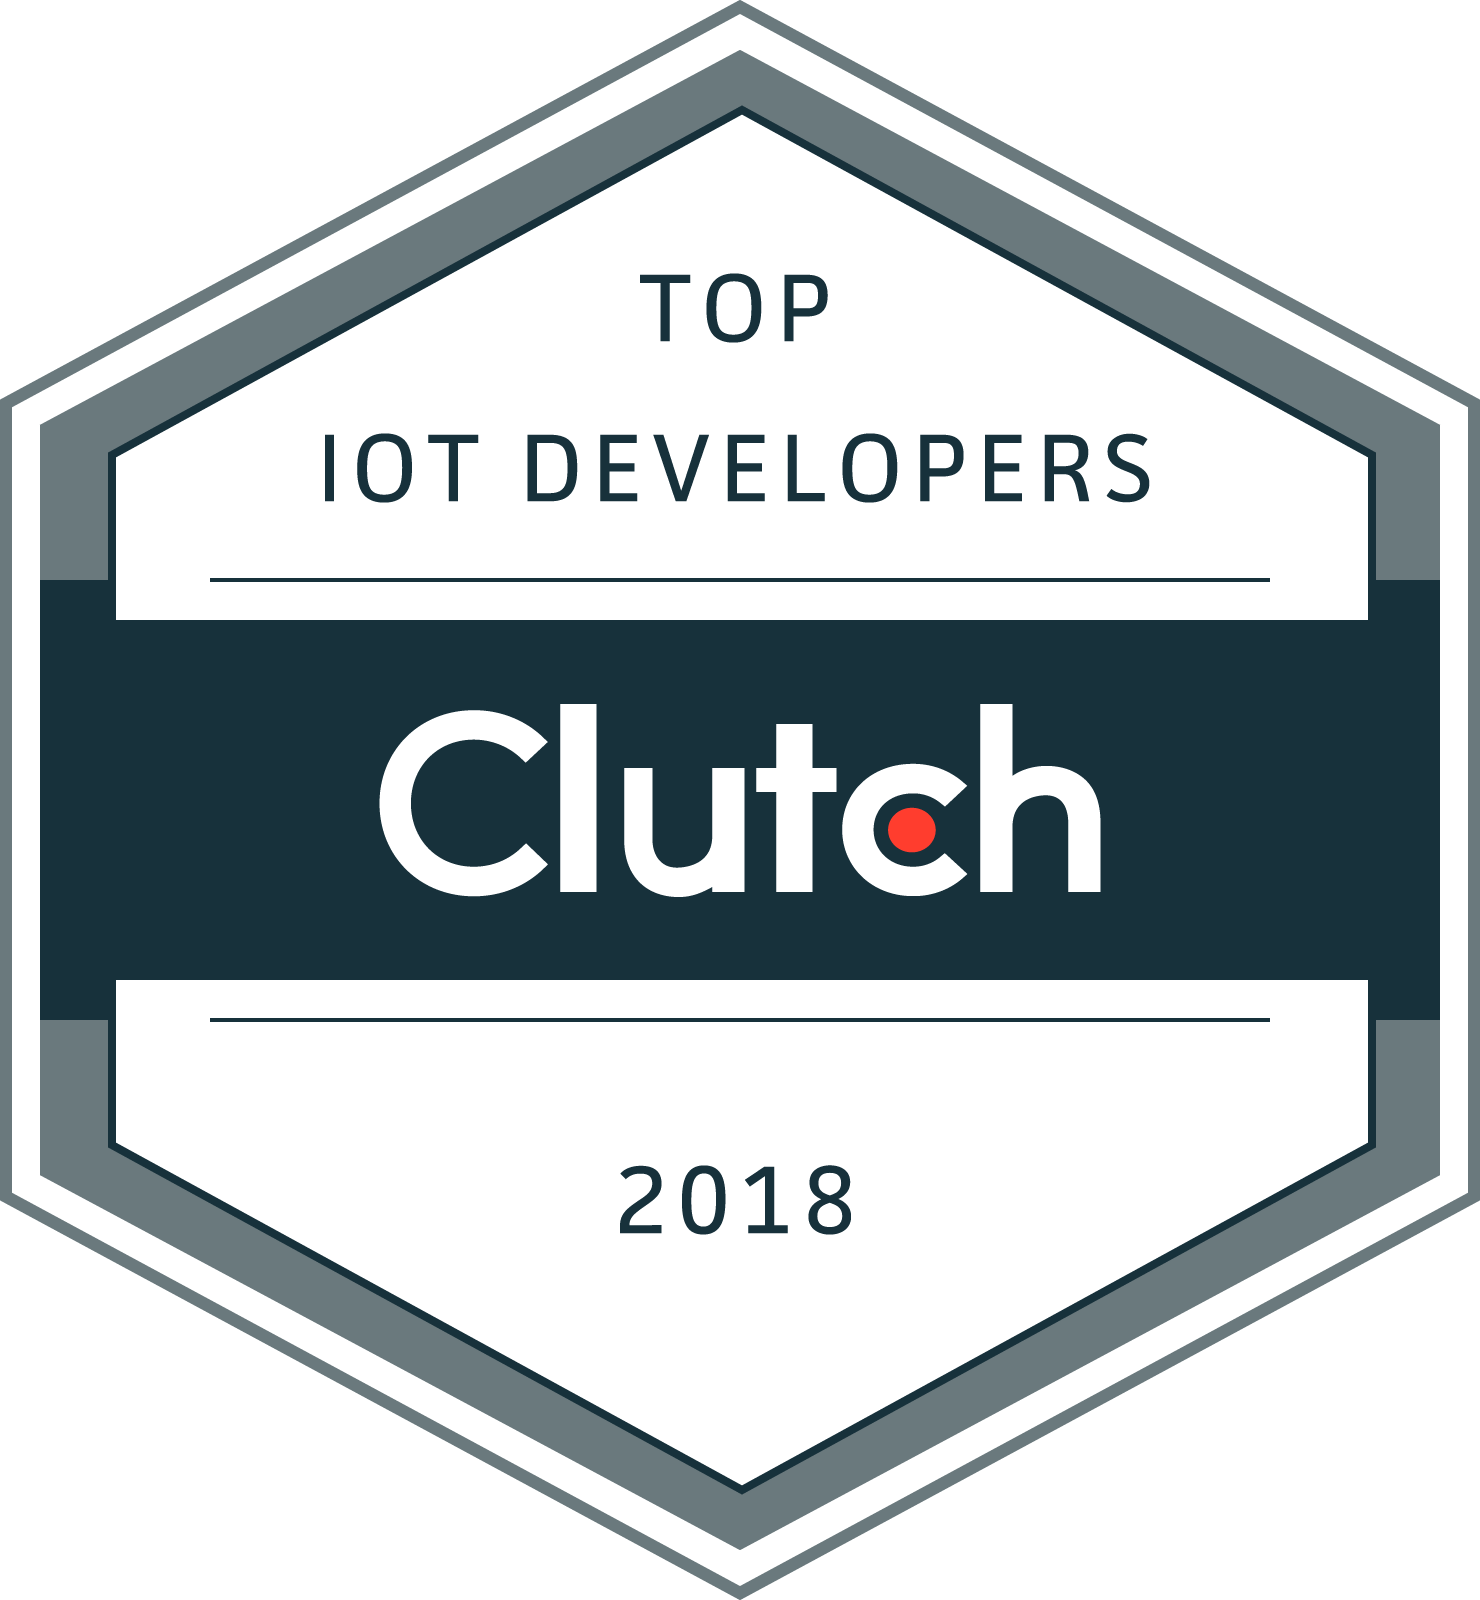 IoT Developers Clutch 2018